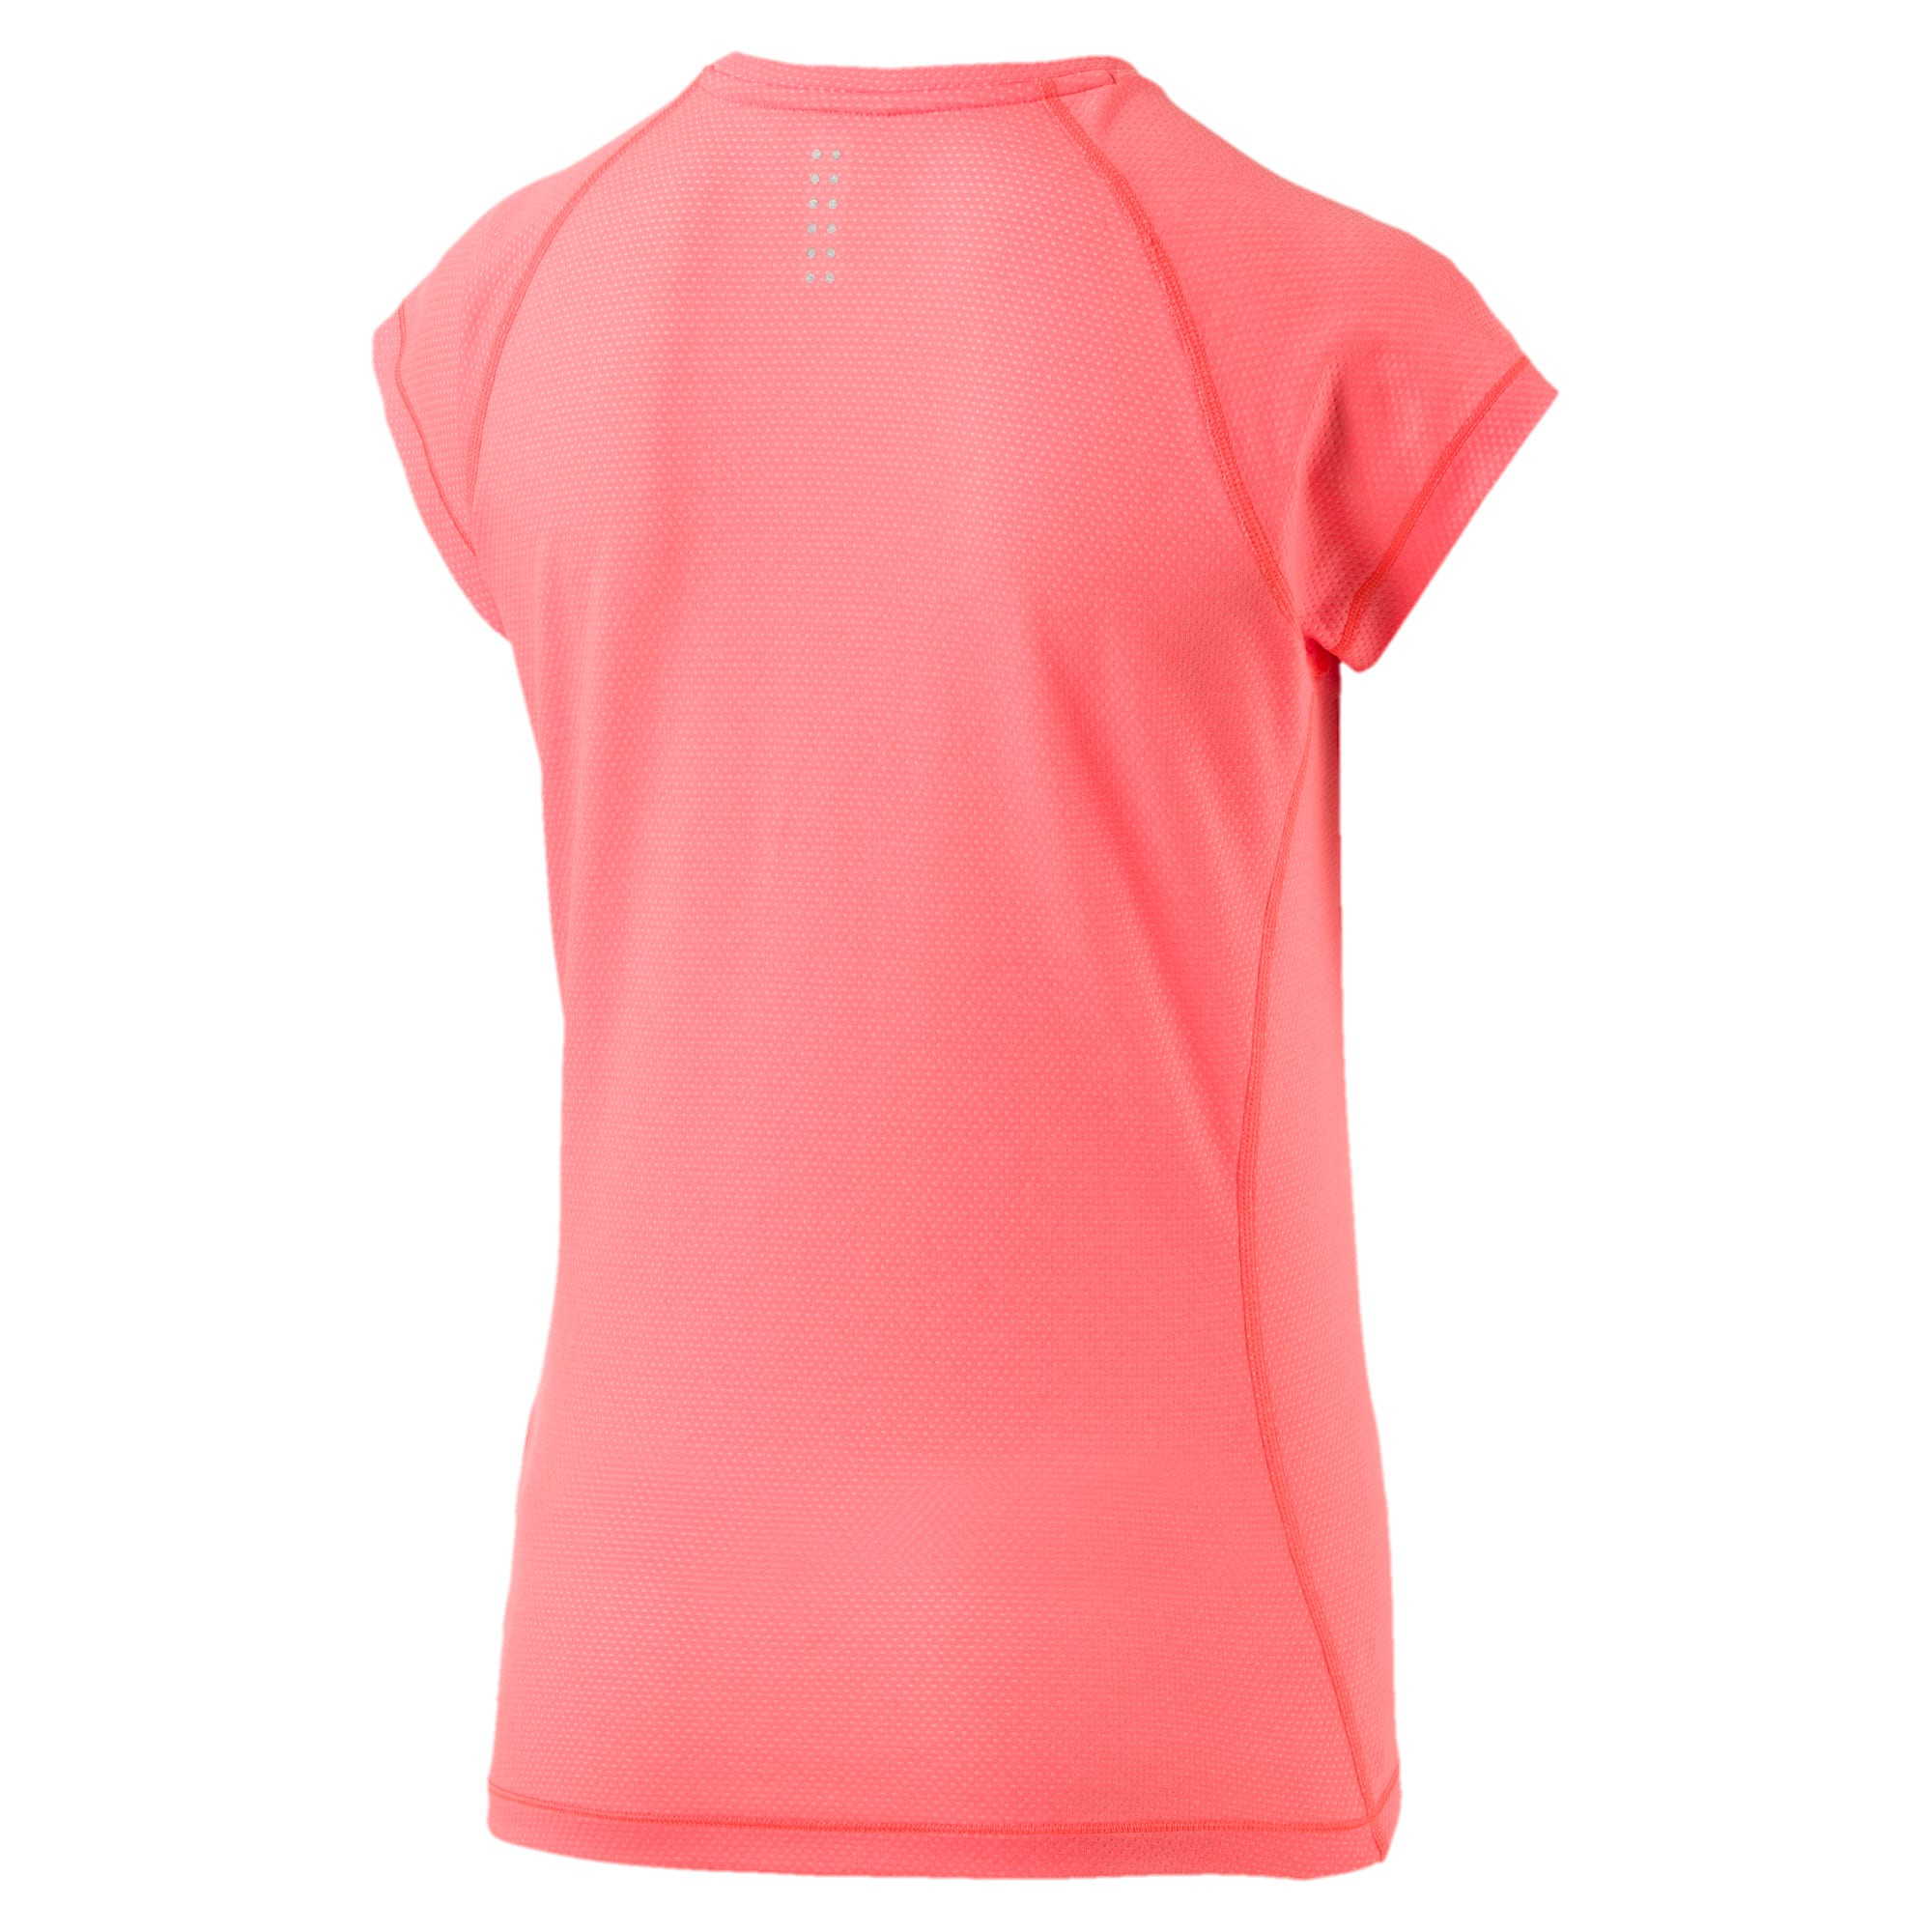 Thumbnail 5 of Running Women's Adapt Thermo-R T-Shirt, Nrgy Peach, medium-IND